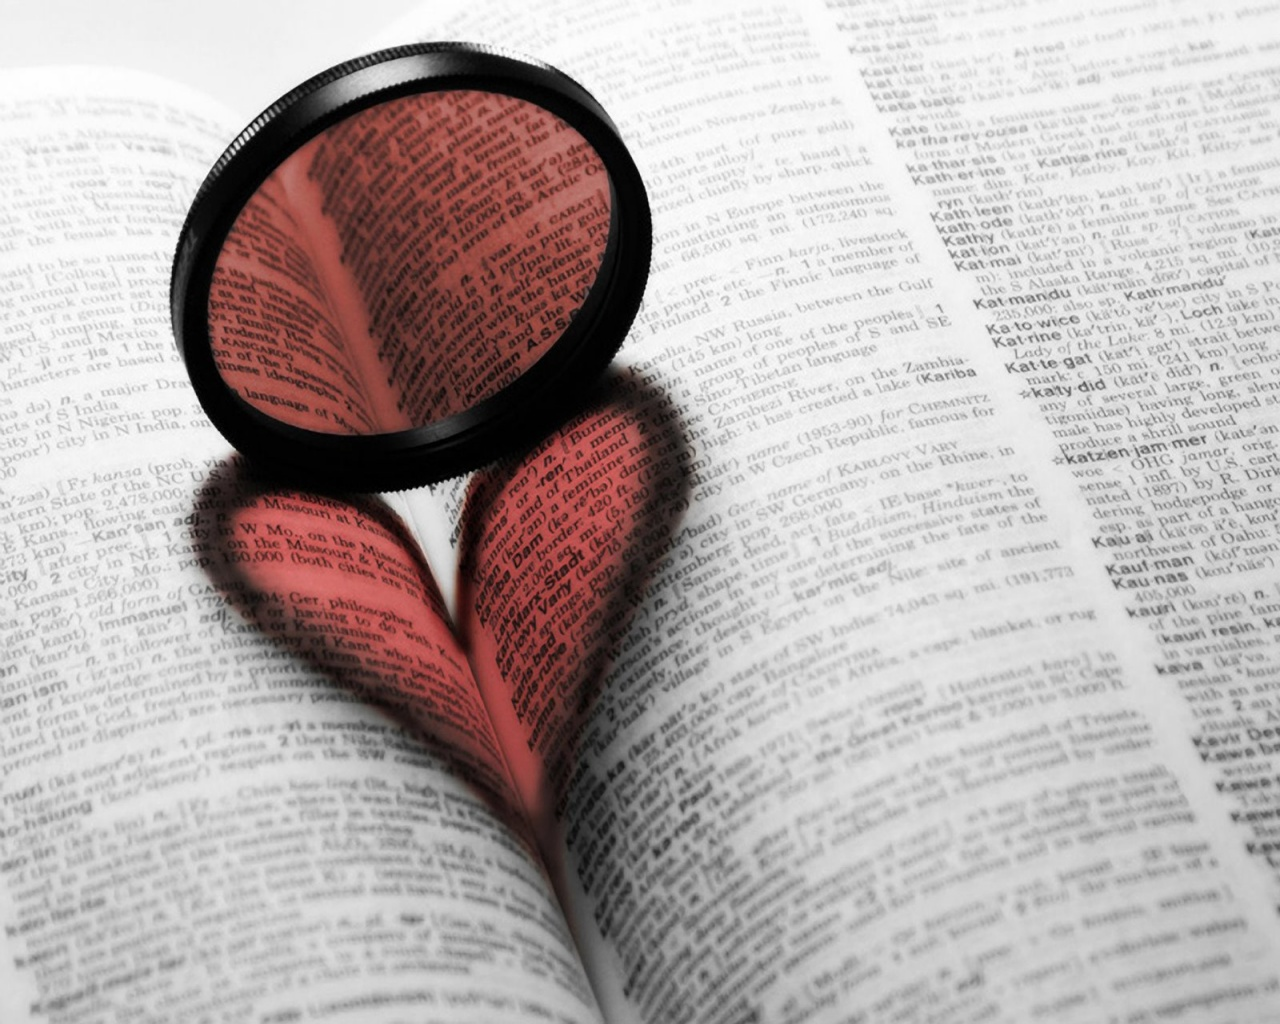 Book with a red shadow in a shape of heart